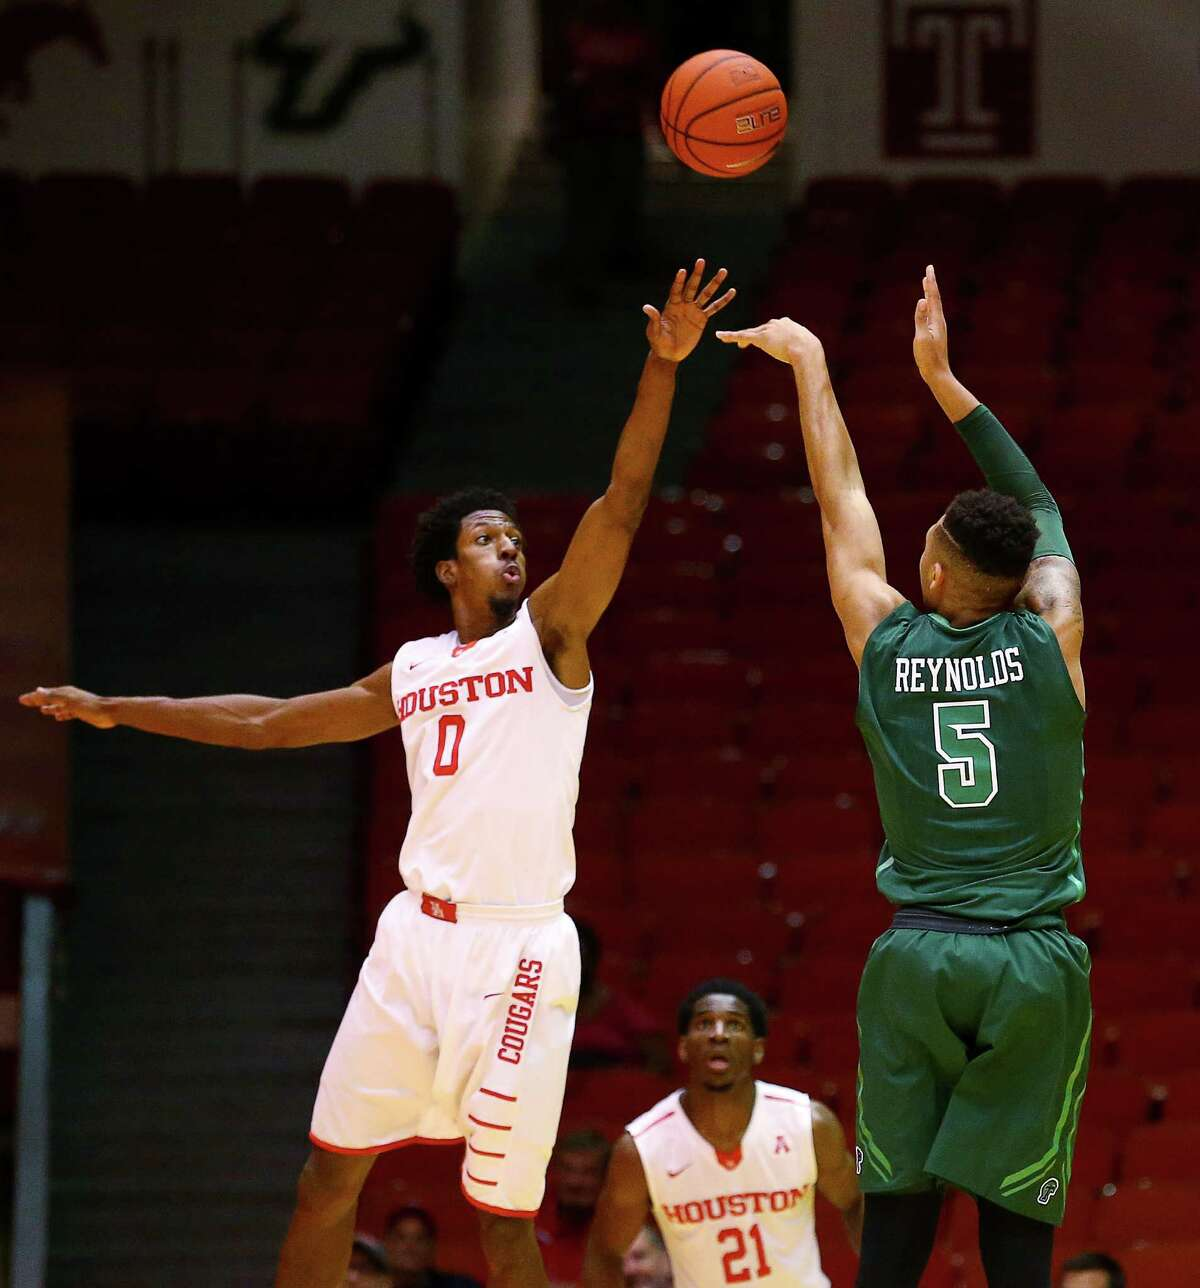 Houston Cougars forward Danrad Knowles (0) tries to block a shot by Tulane Green Wave guard Cameron Reynolds (5) during the first half of an NCAA basketball game at Hofheinz Pavillion, Tuesday, Jan. 24, 2017, in Houston.